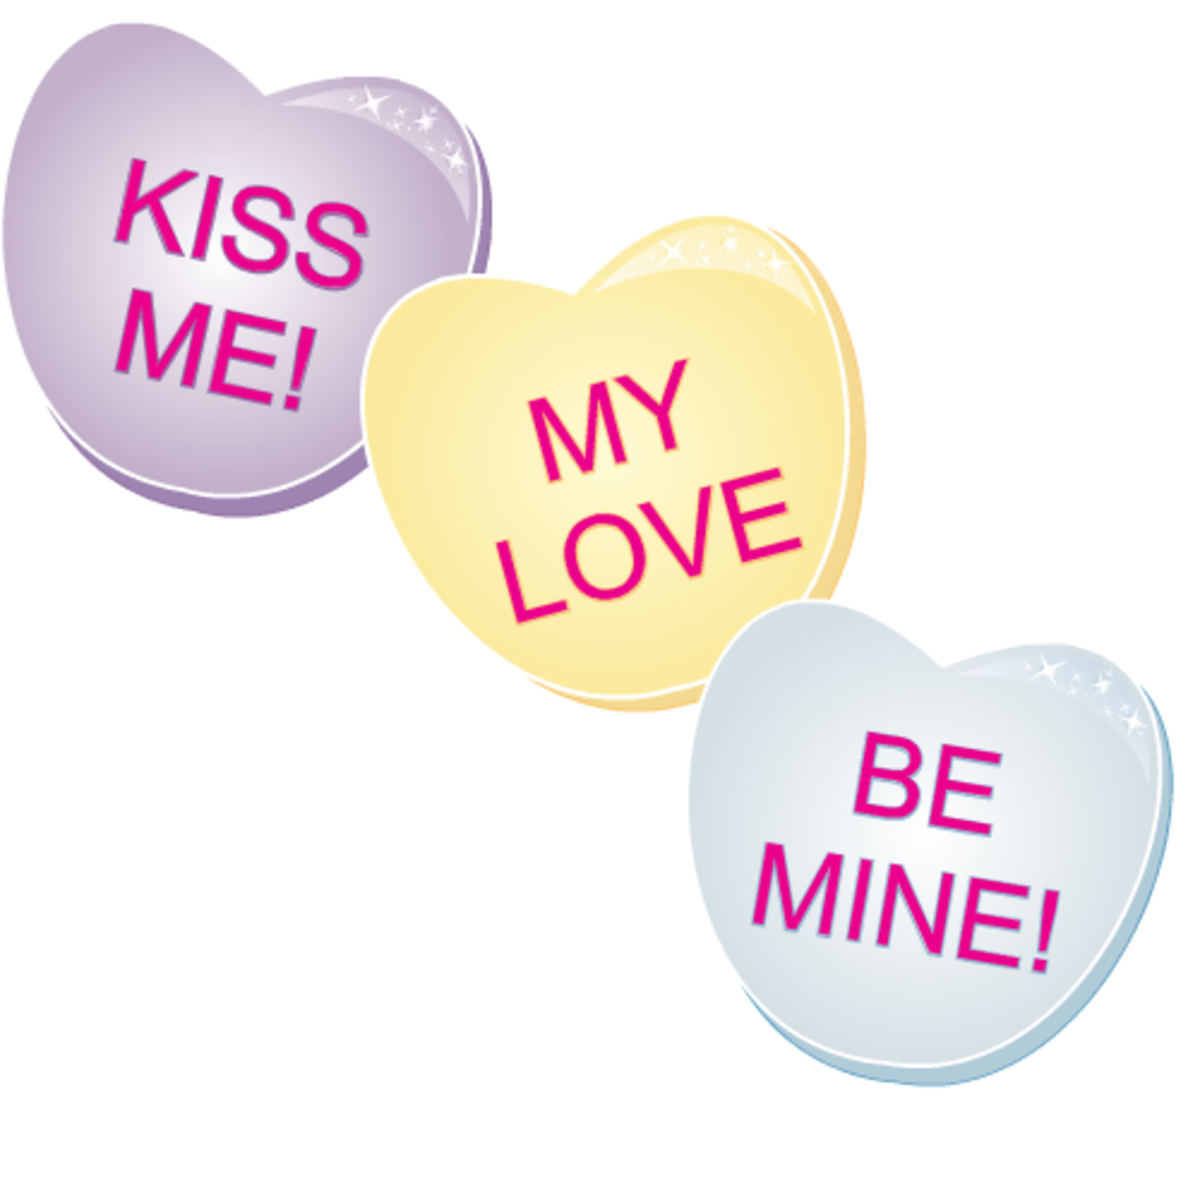 Free valentine clip art: Three candy hearts